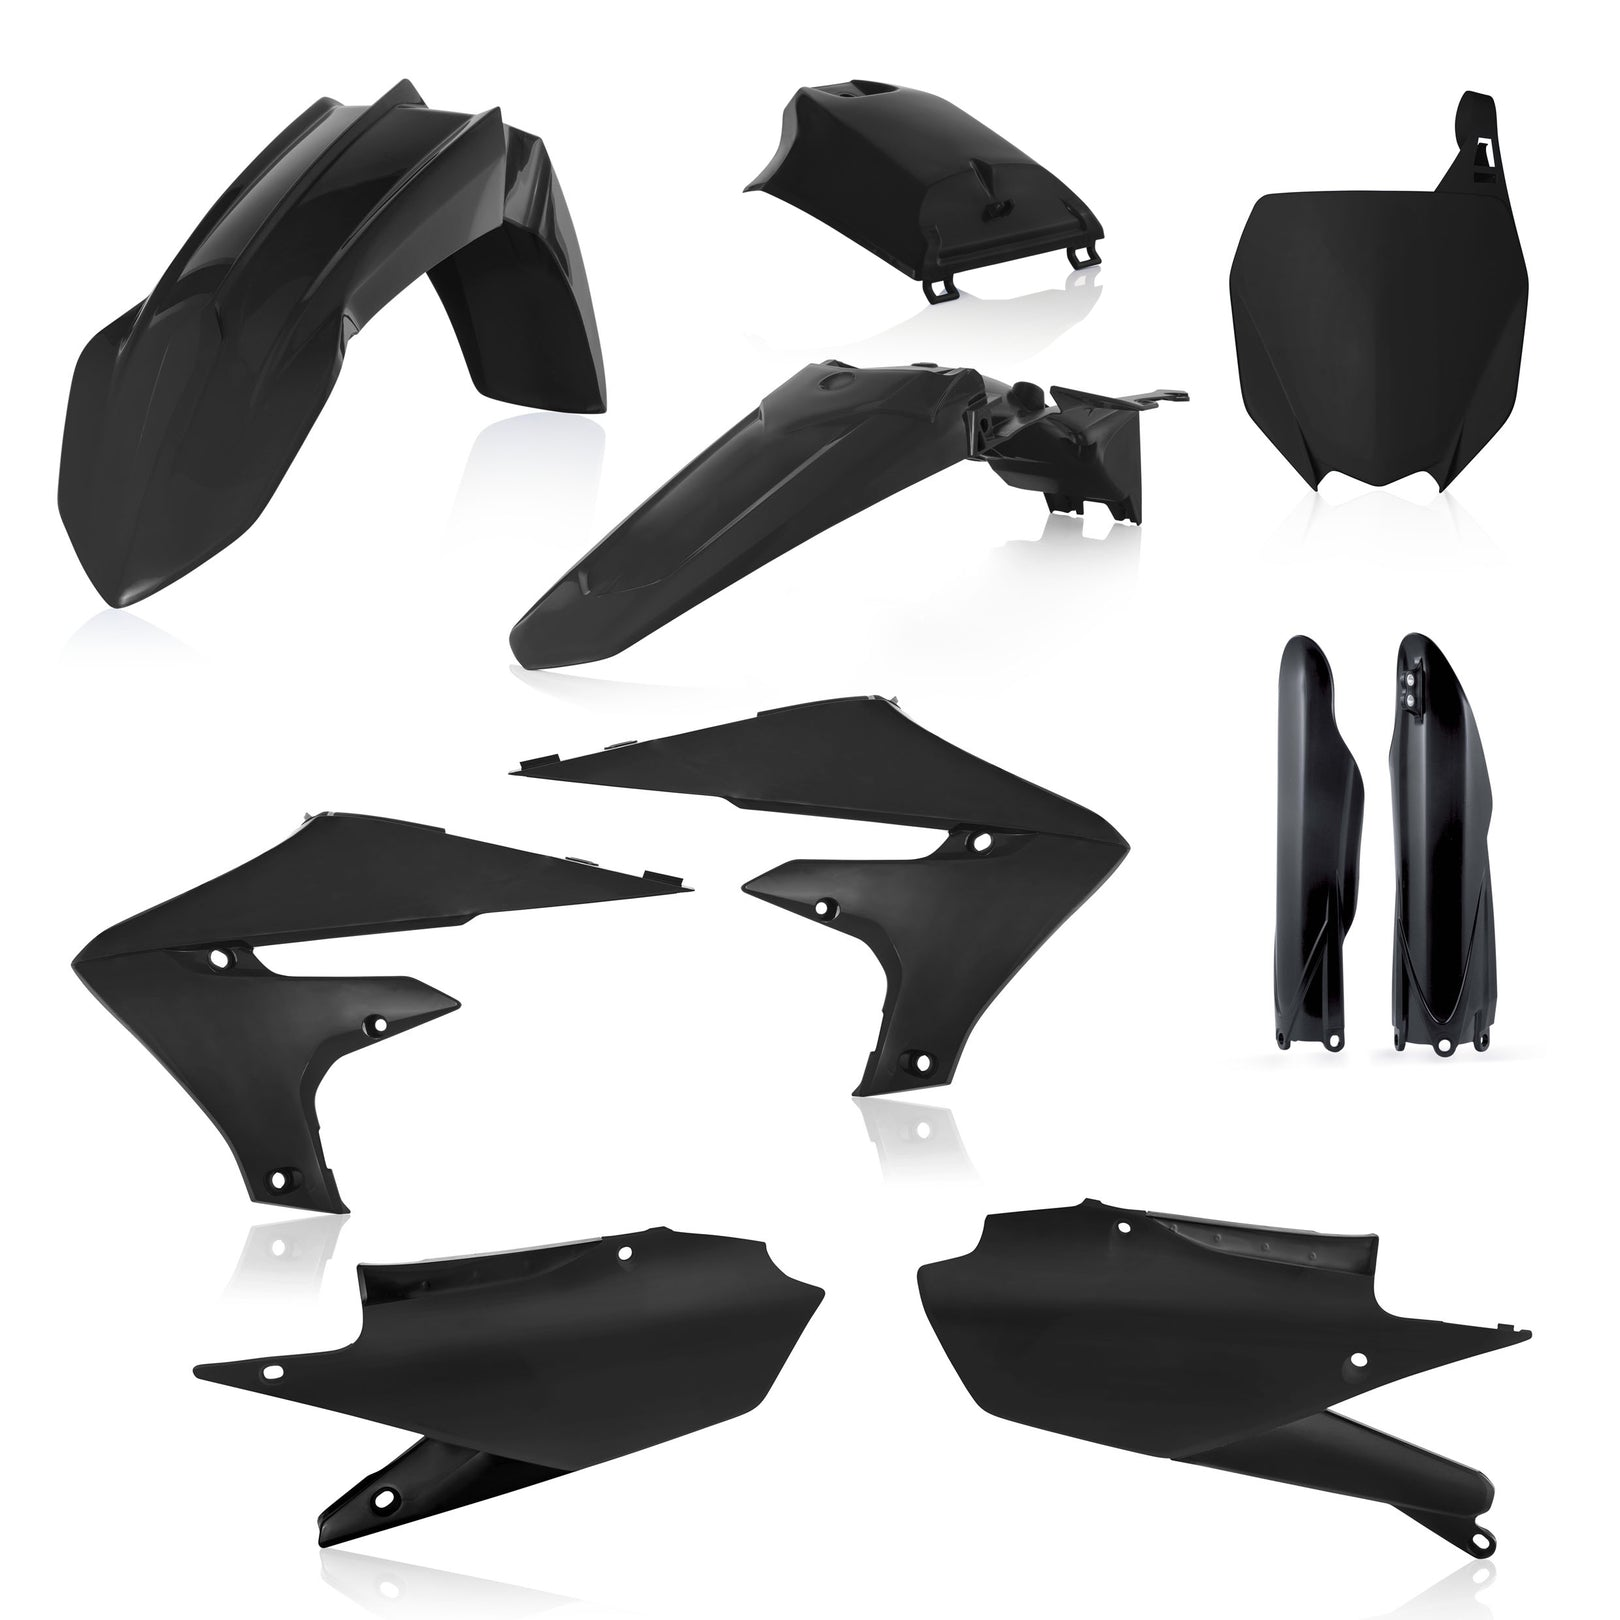 YAMAHA FULL PLASTIC KIT - BLACK YZ250F: 19-20, YZ250FX: 20, YZ450F: 18-20, YZ450FX: 19-20 - Acerbis (includes tank cover)